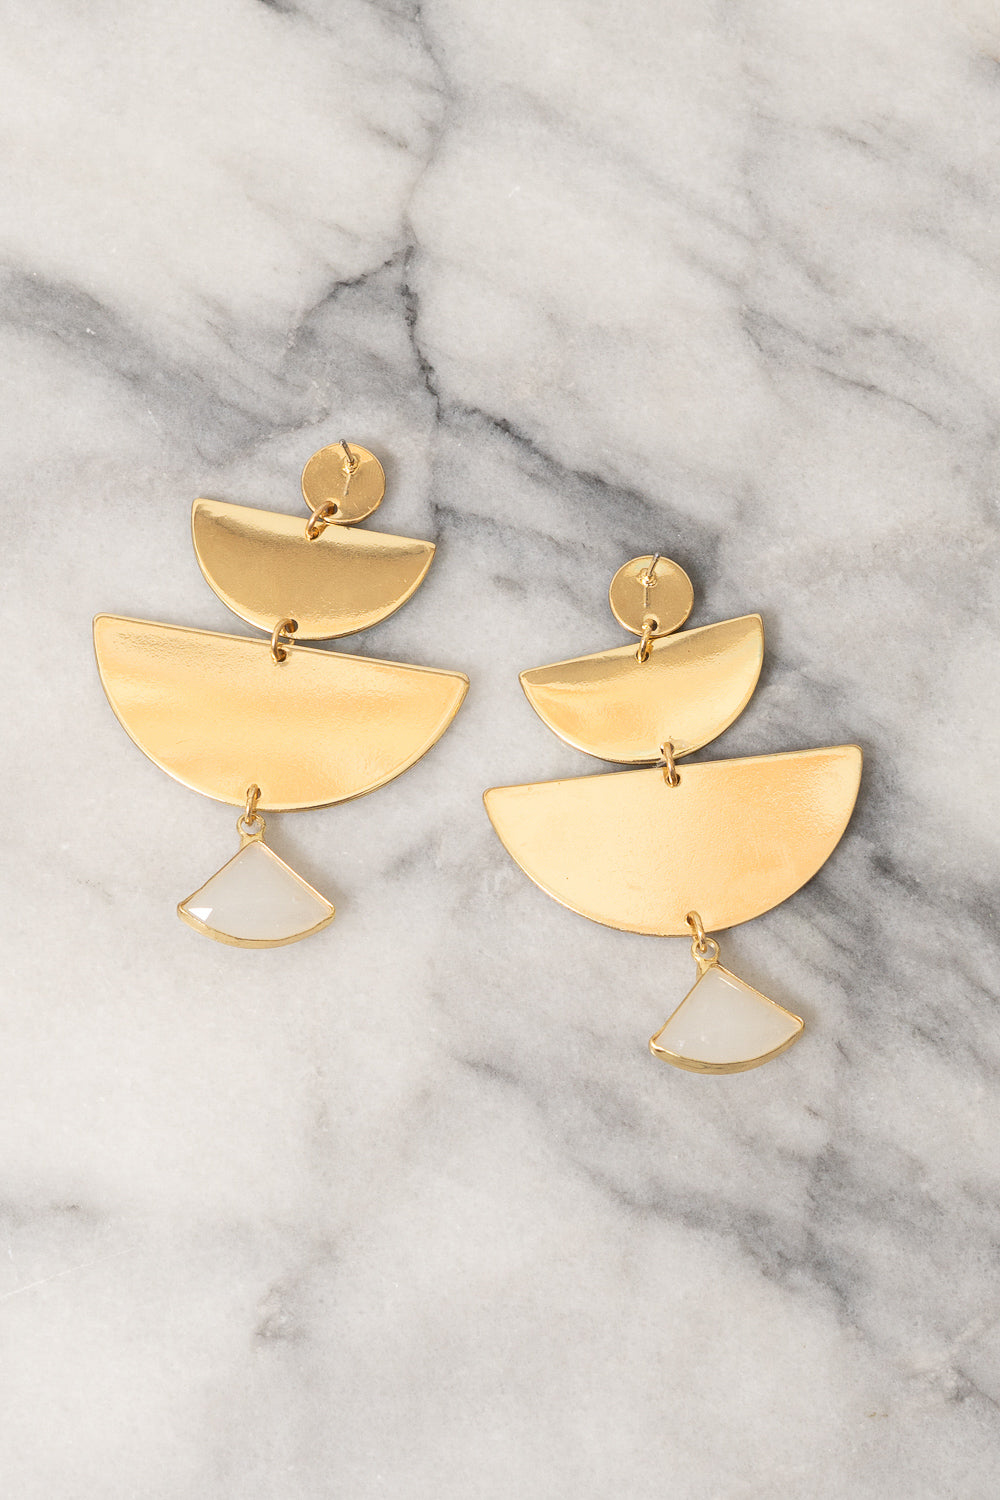 gold fan chandlier earrings on marble